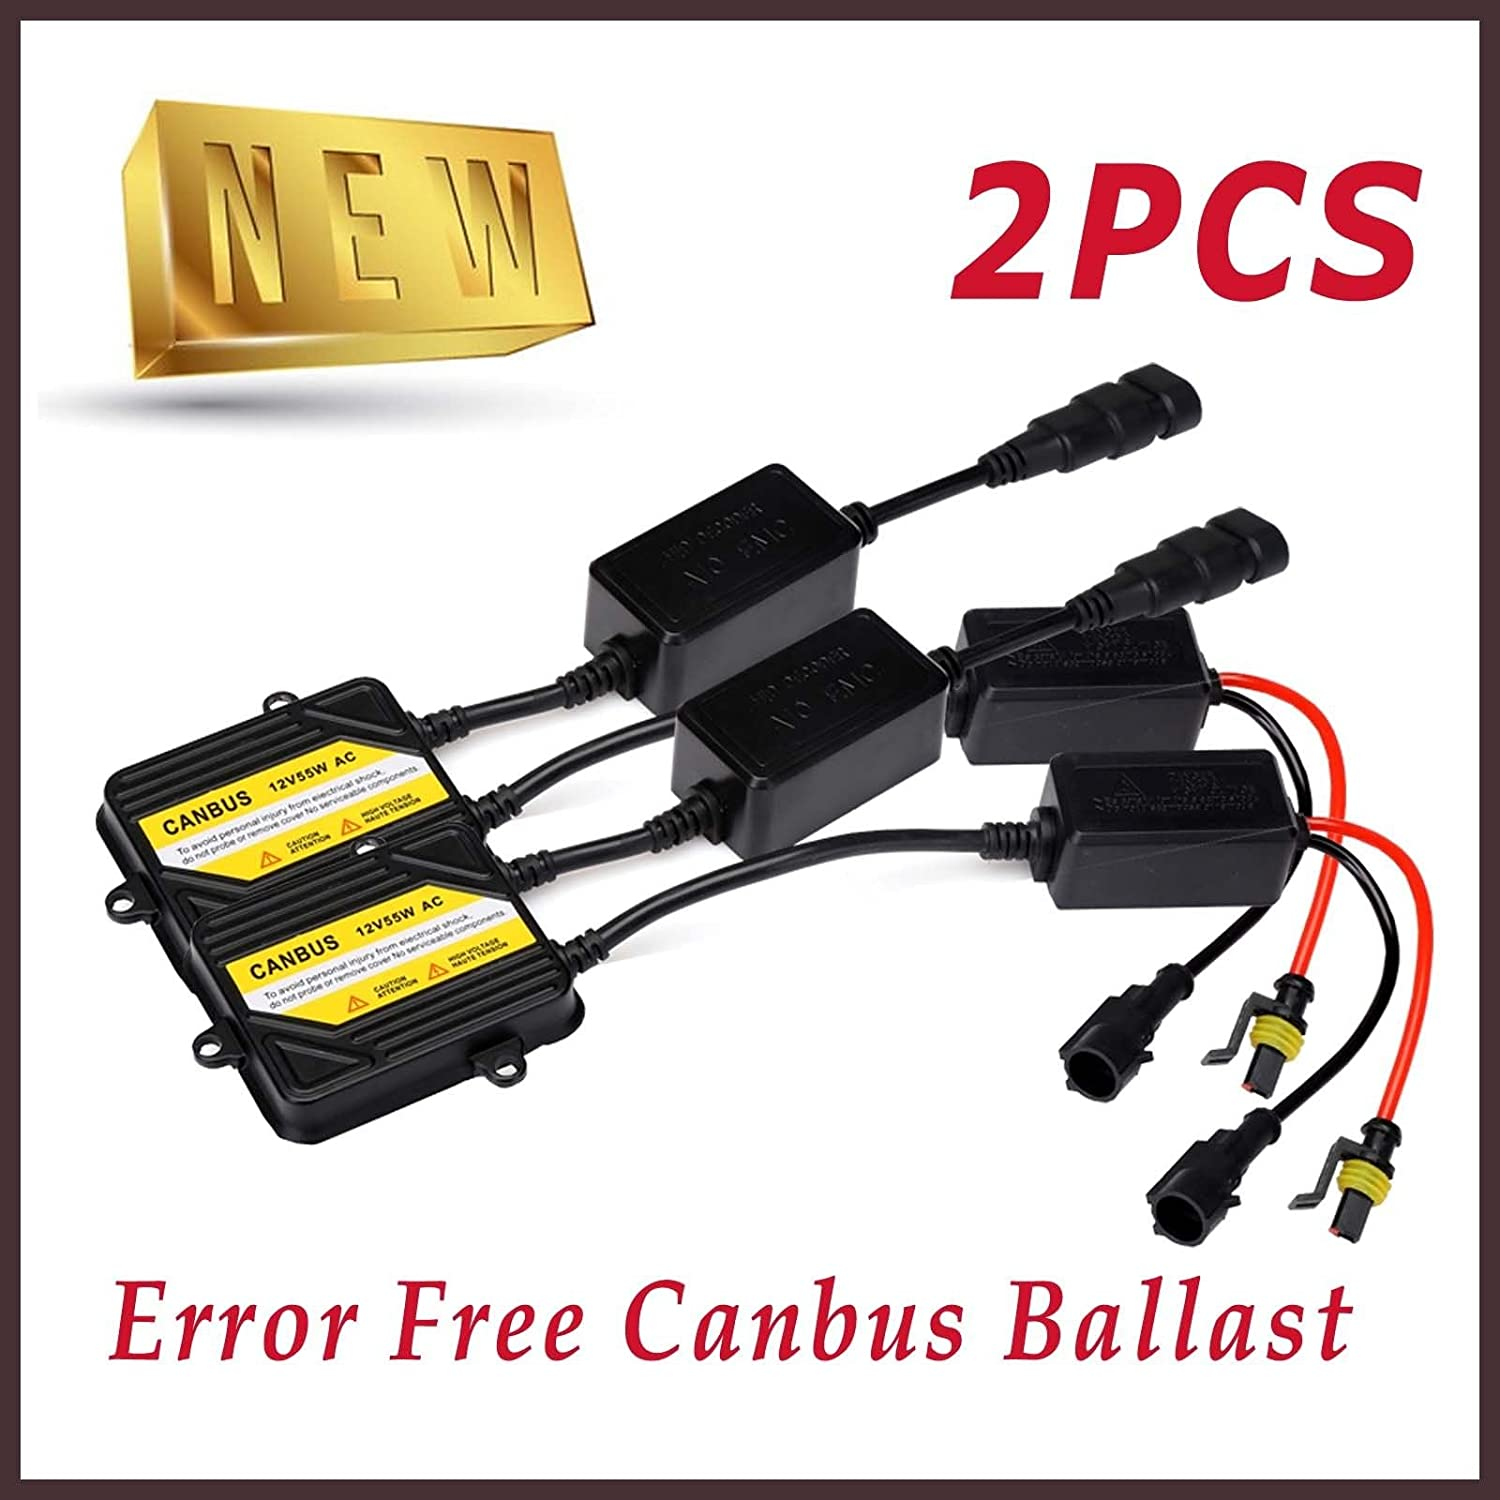 2Pcs 12V 55W Advanced CANBUS BALLAST - ERROR FREE HID Kit Bowose Factory